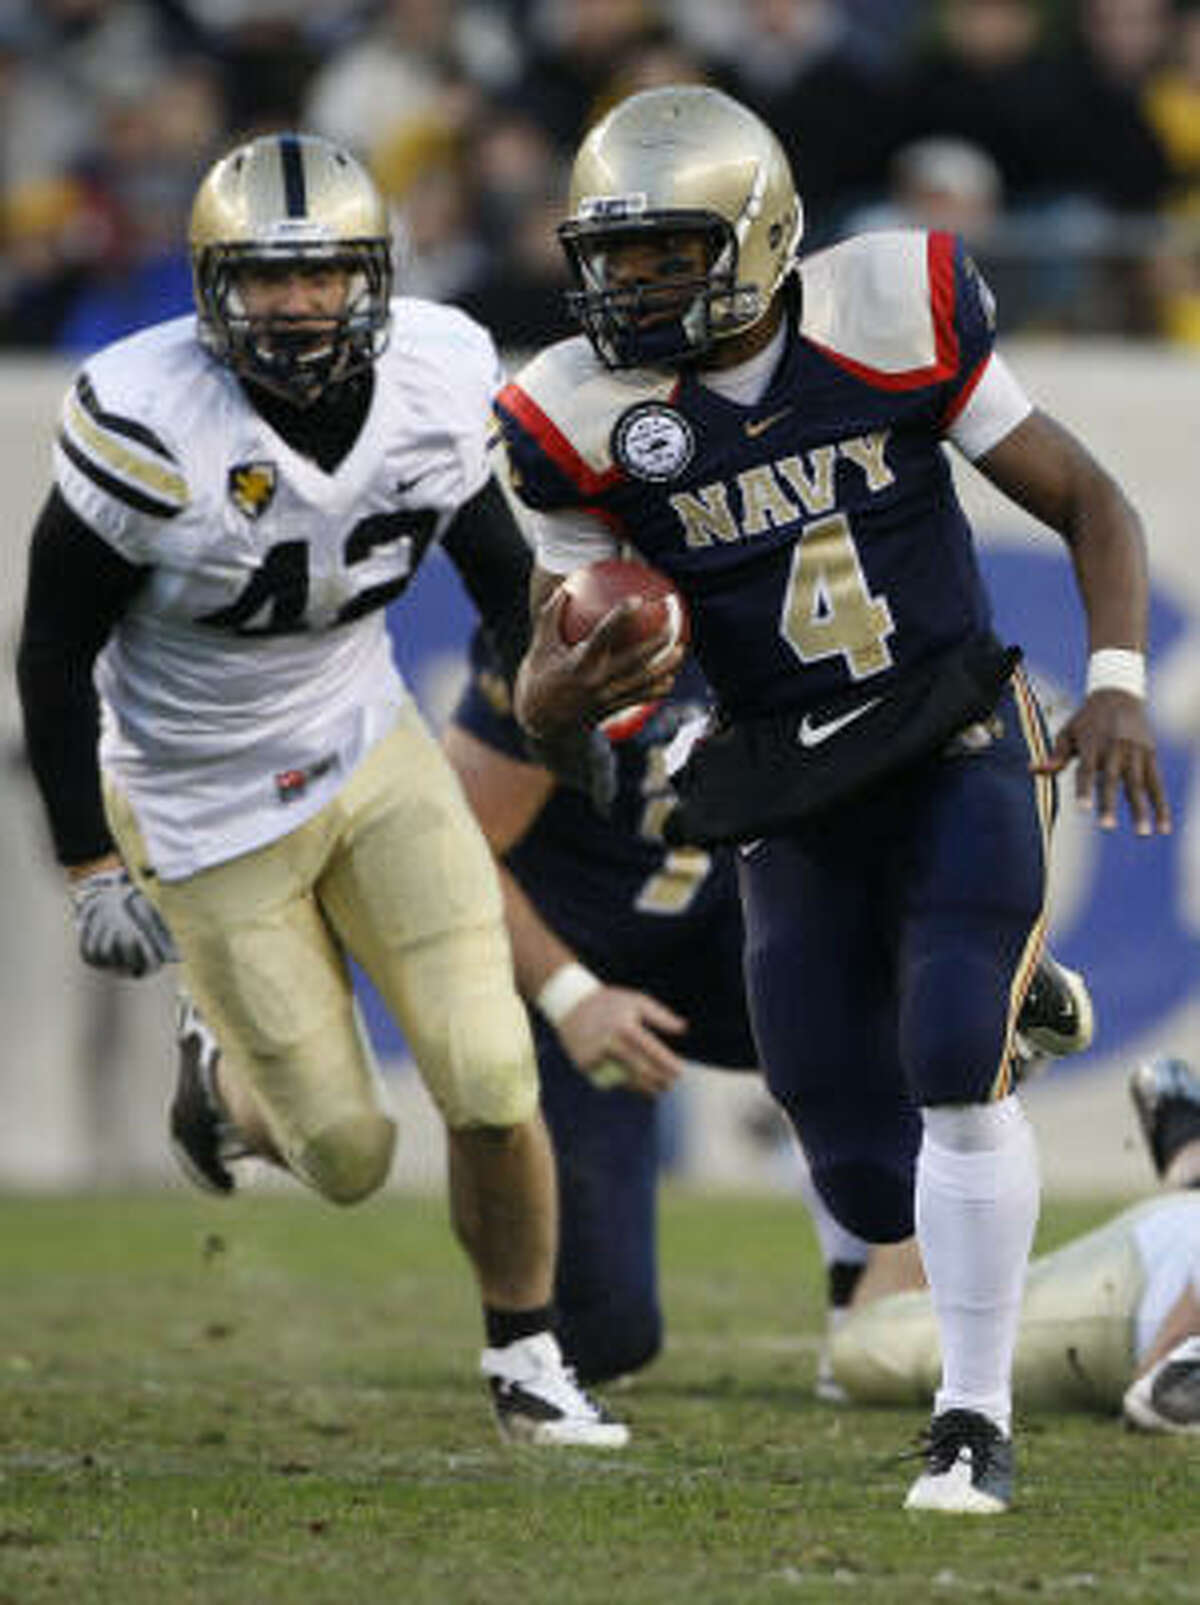 In his first year as Navy's starting quarterback, Ricky Dobbs has rushed for 24 touchdowns.